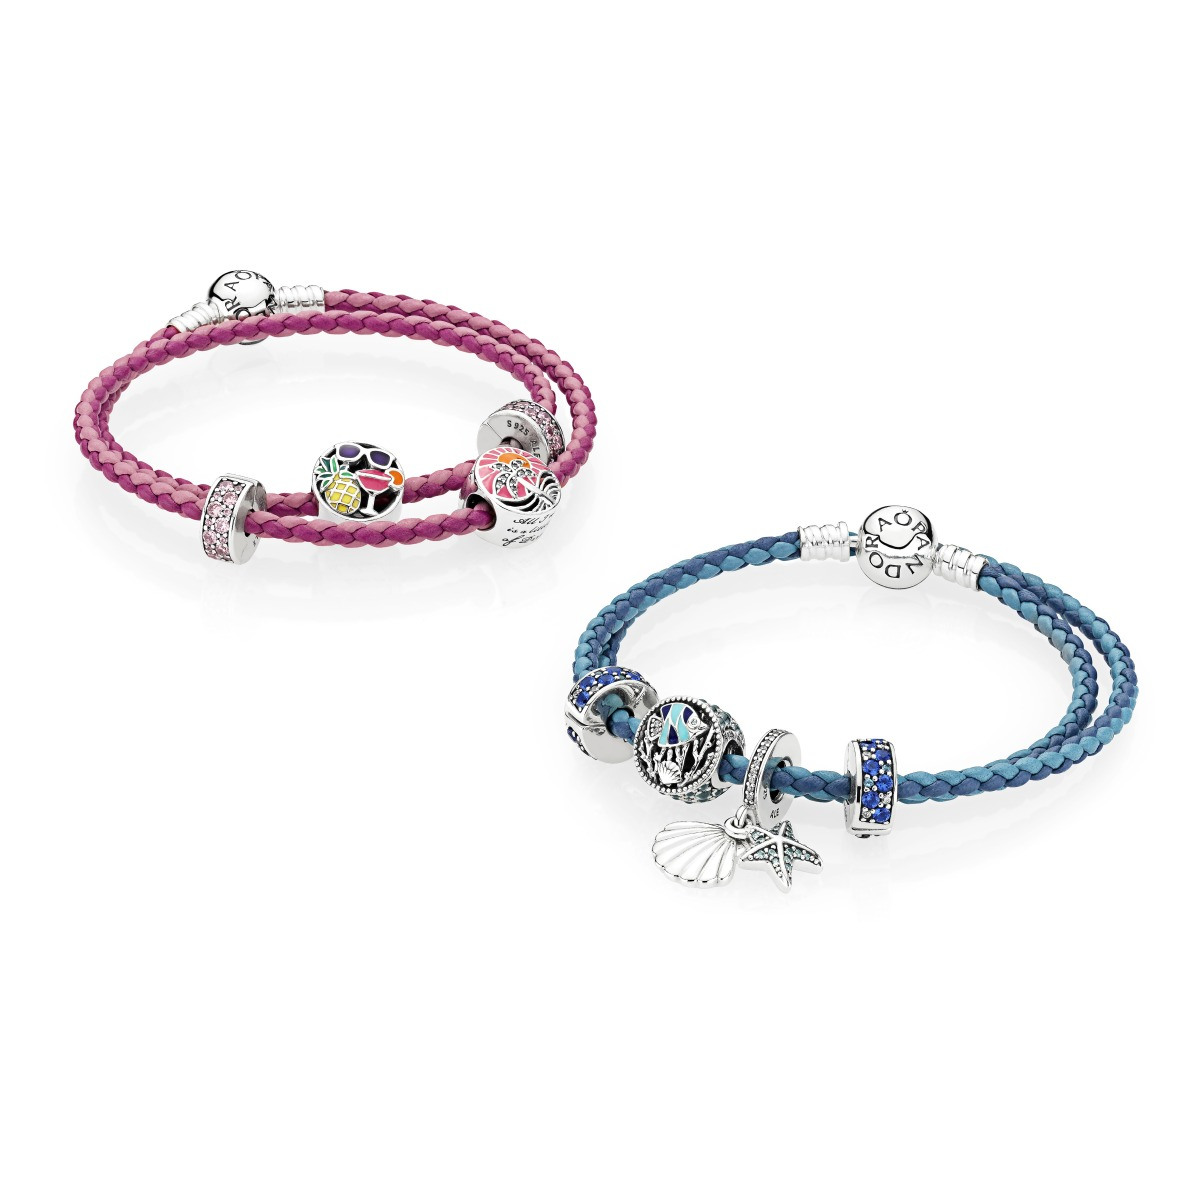 Amp Up Your Holiday Bling With Pandora Summer 2017 Collection